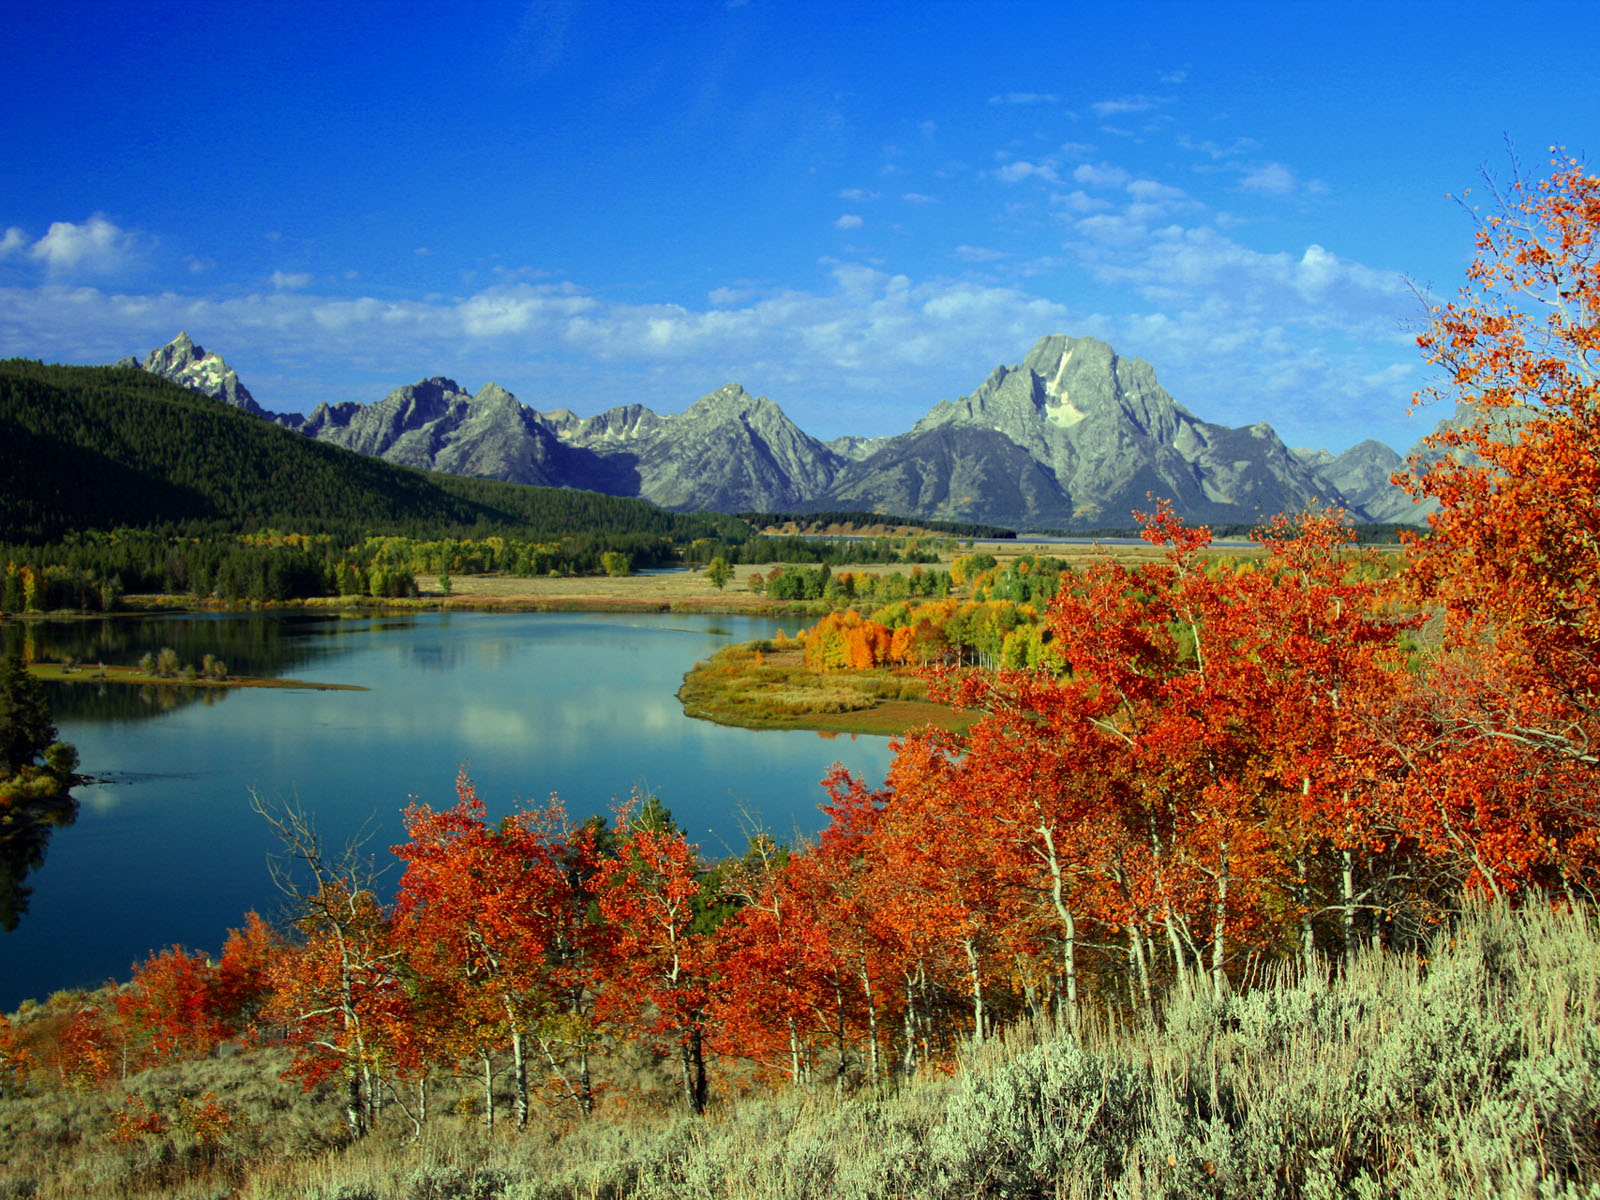 National Park Wallpapers GrandTeton National Park Desktop Wallpapers 1600x1200